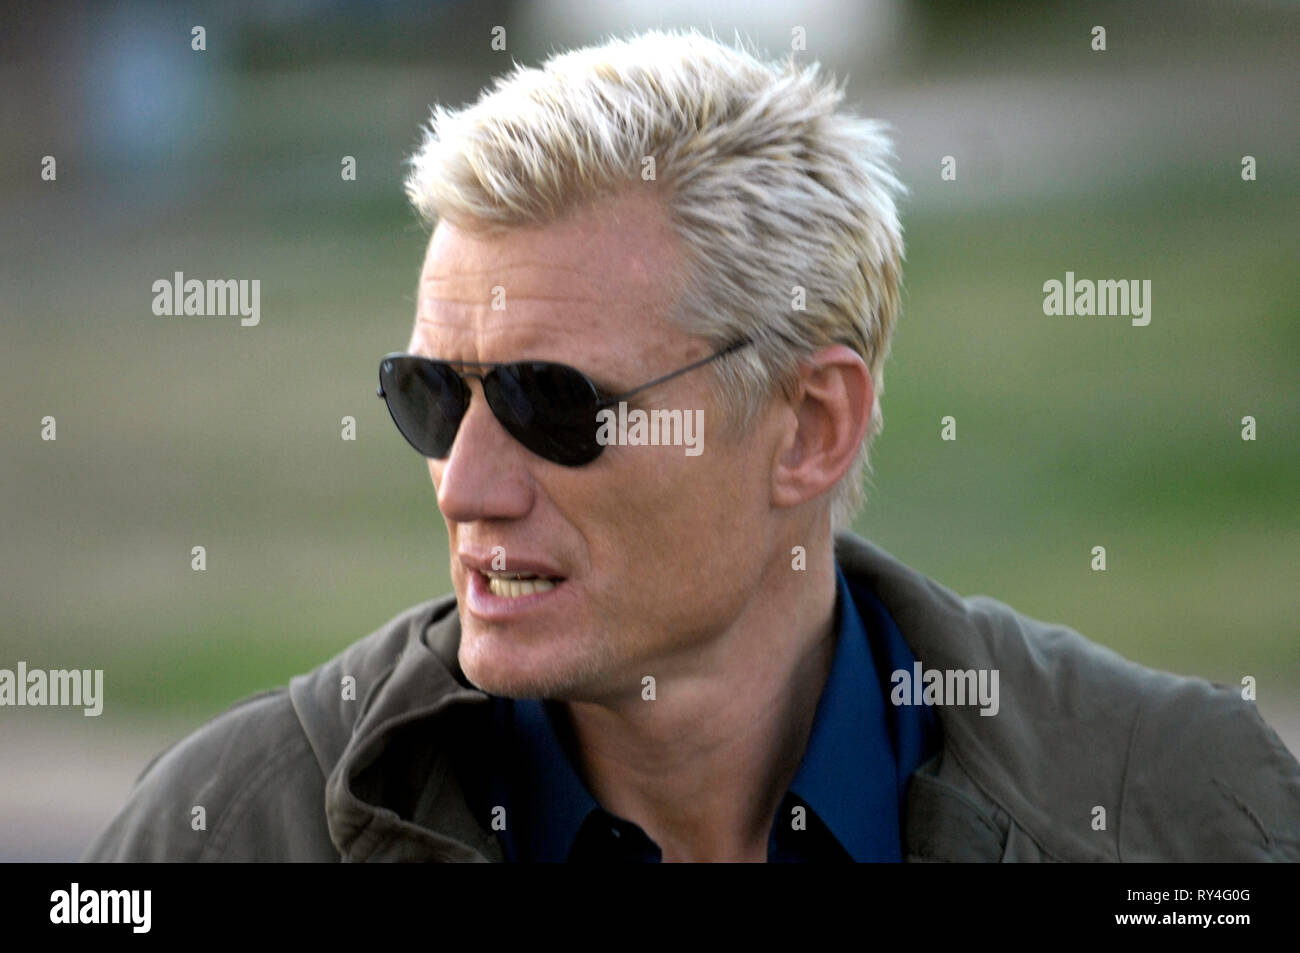 DOLPH LUNDGREN, MISSIONARY MAN, 2007 - Stock Image